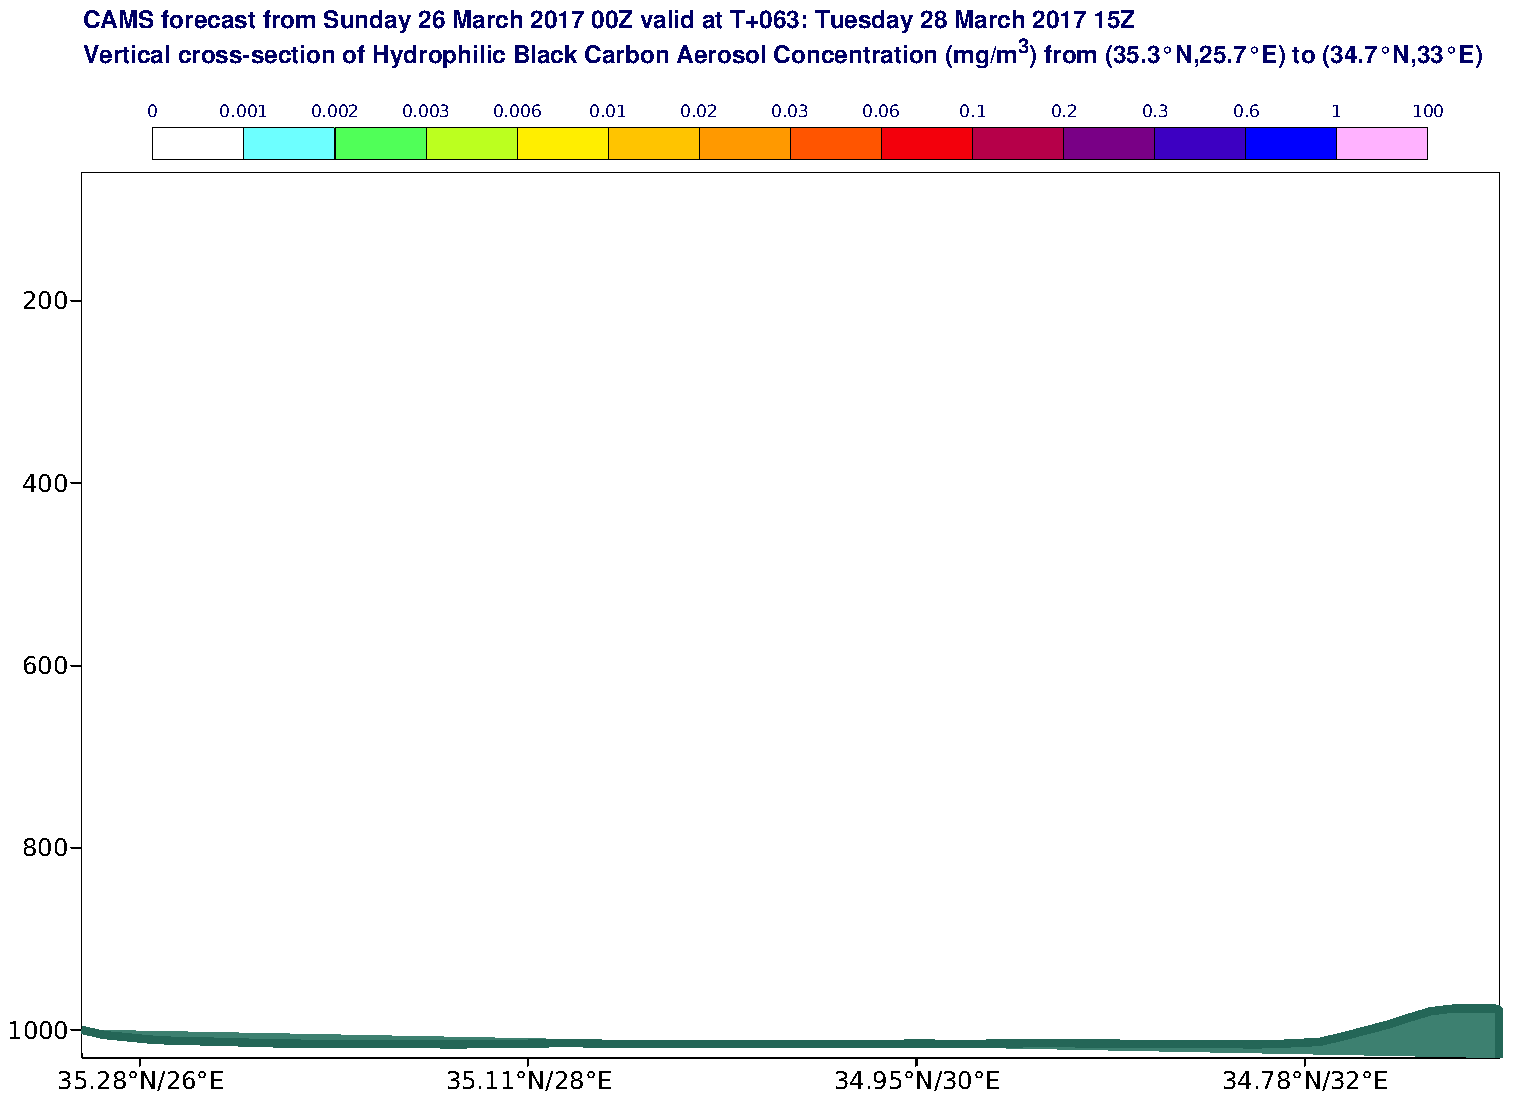 Vertical cross-section of Hydrophilic Black Carbon Aerosol Concentration (mg/m3) valid at T63 - 2017-03-28 15:00